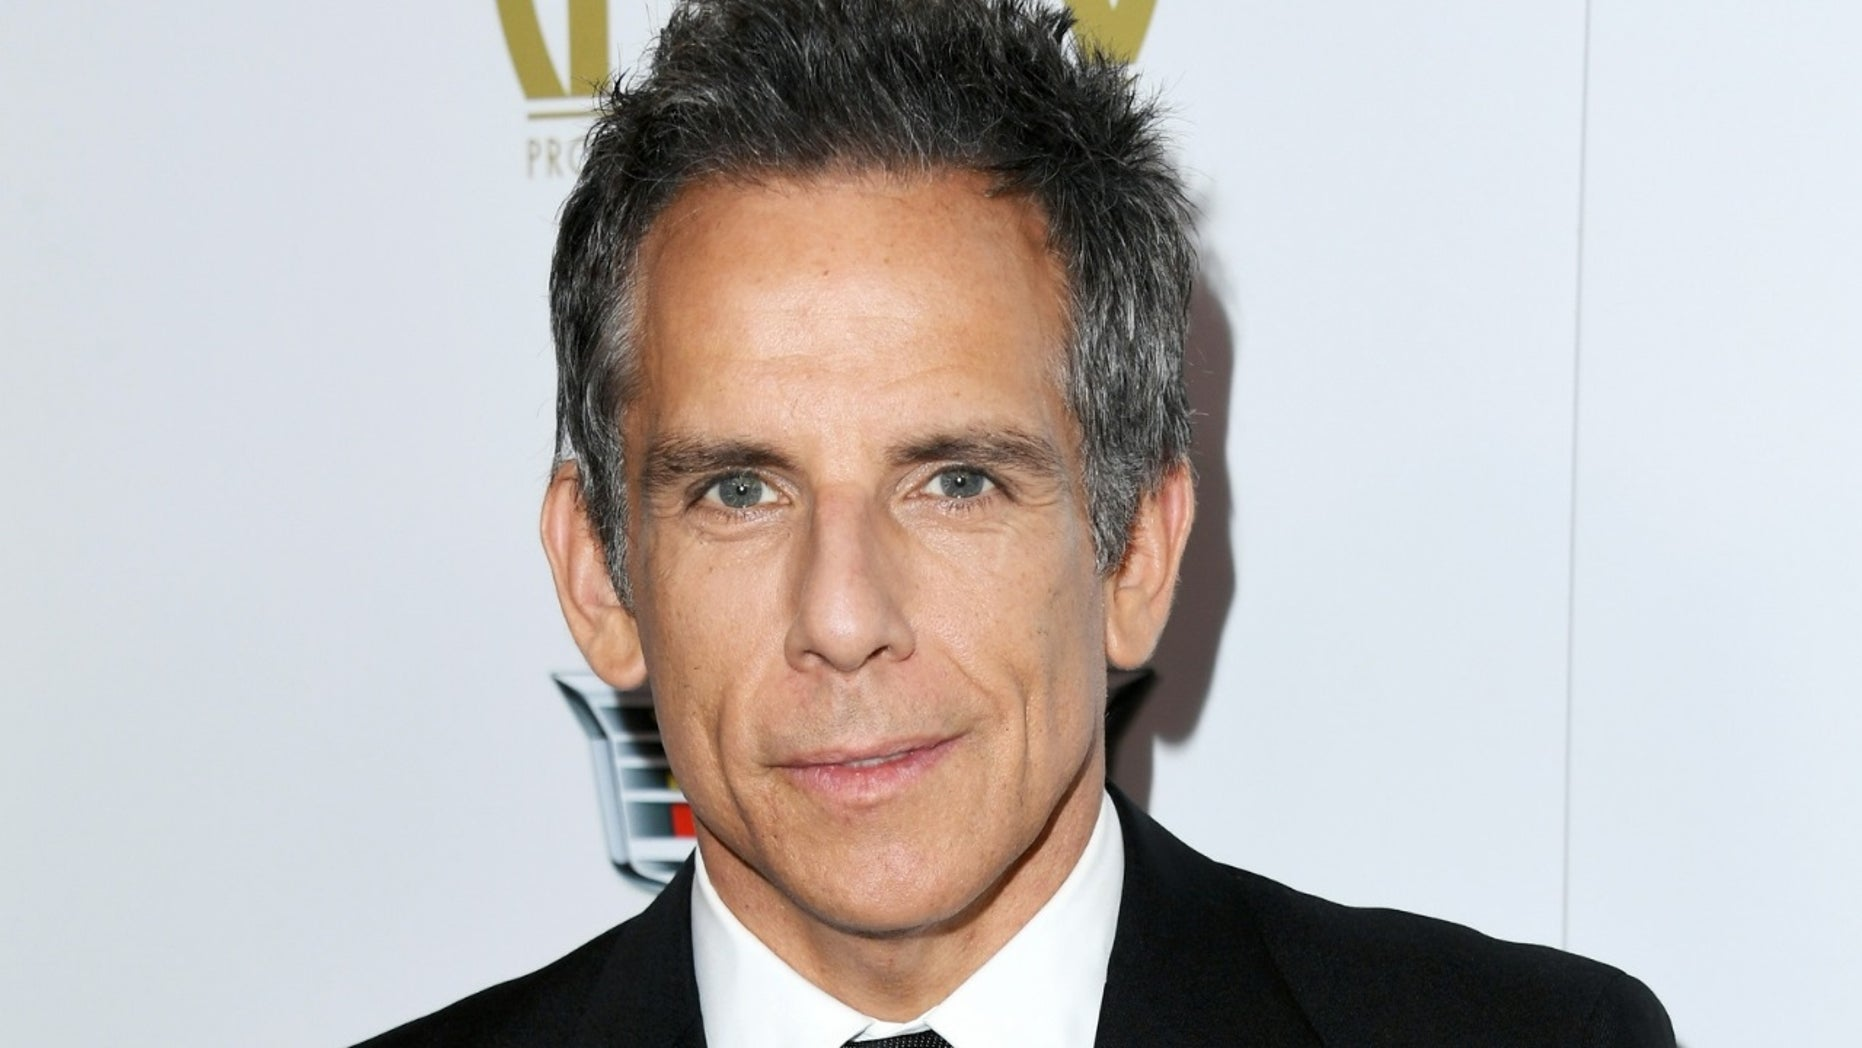 Ben Stiller joined New York Gov. Andrew Cuomo on Thursday, Jan. 24, 2019.